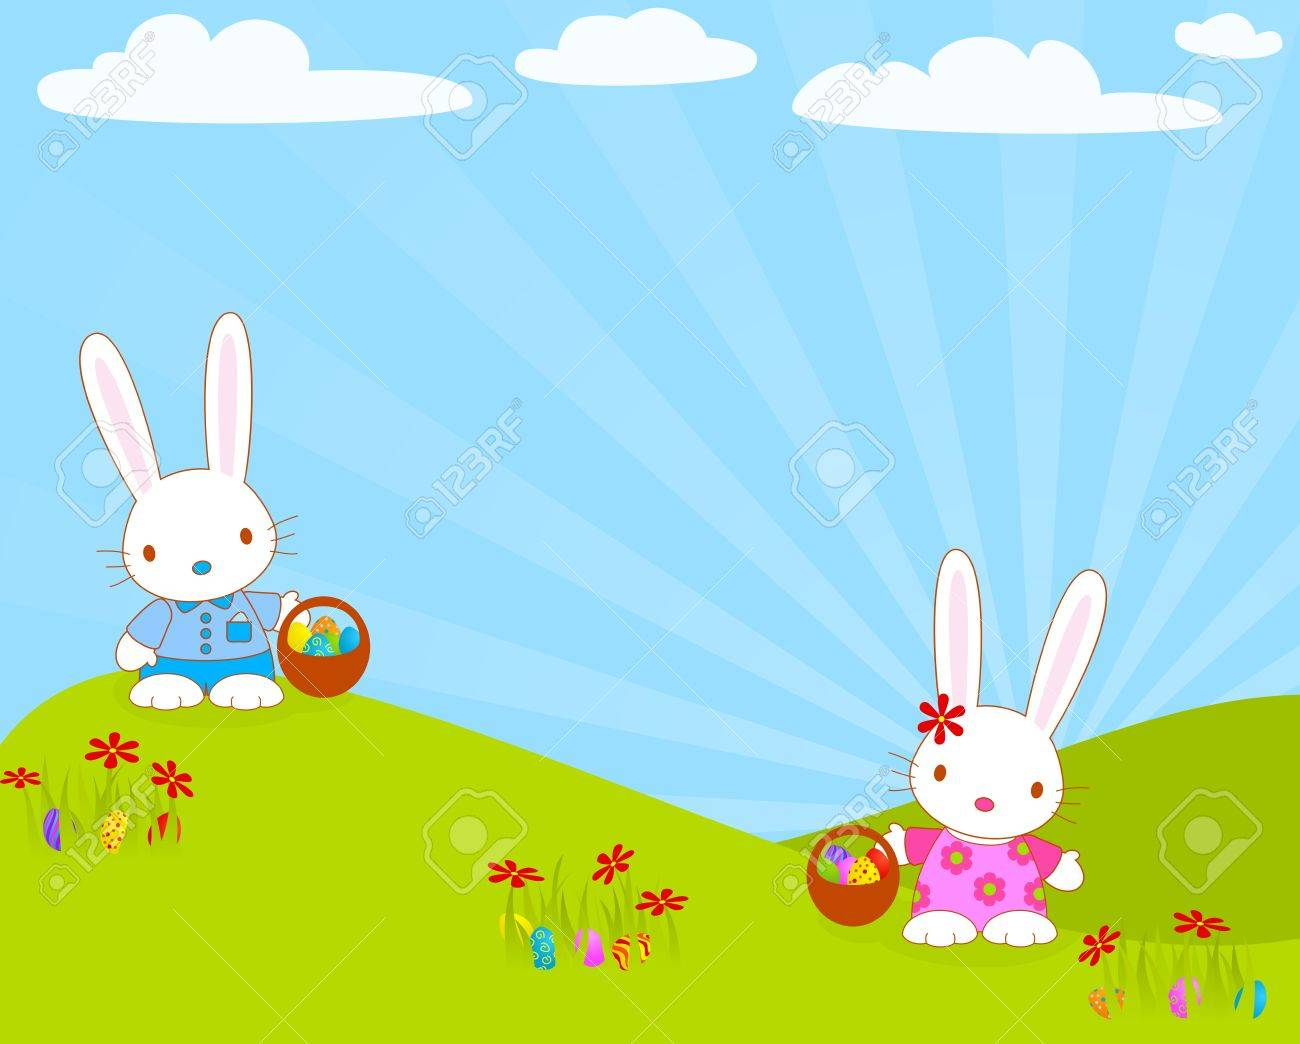 Easter bunnies with their baskets and eggs. Stock Vector - 12485167